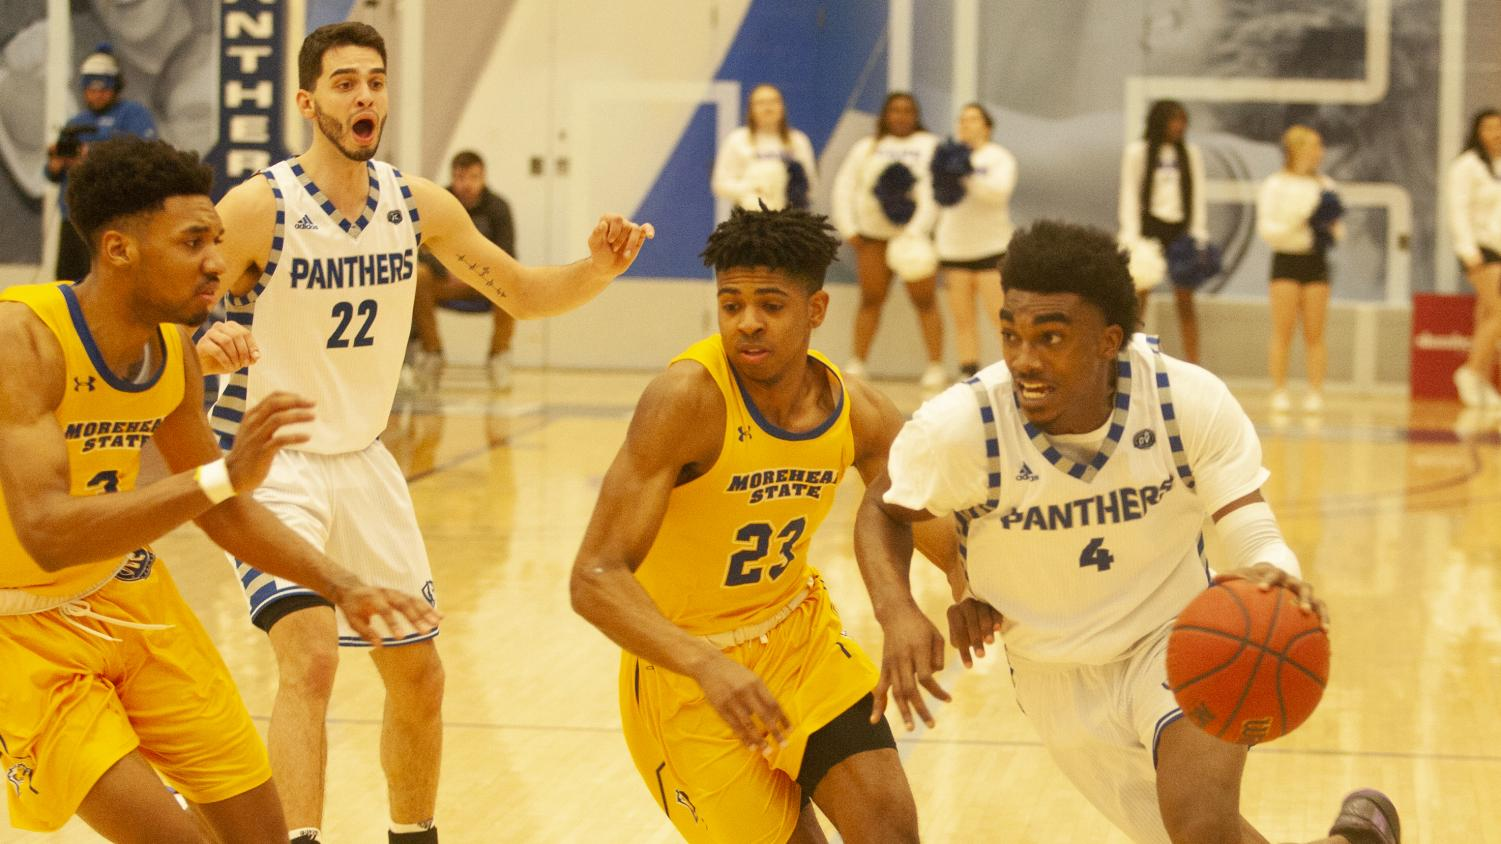 Eastern guard Marvin Johnson drives to the basket against Morehead State on Feb. 8 in Lantz Arena. Johnson had seven points, two rebounds and two assists in the game, which the Panthers won 71-65.